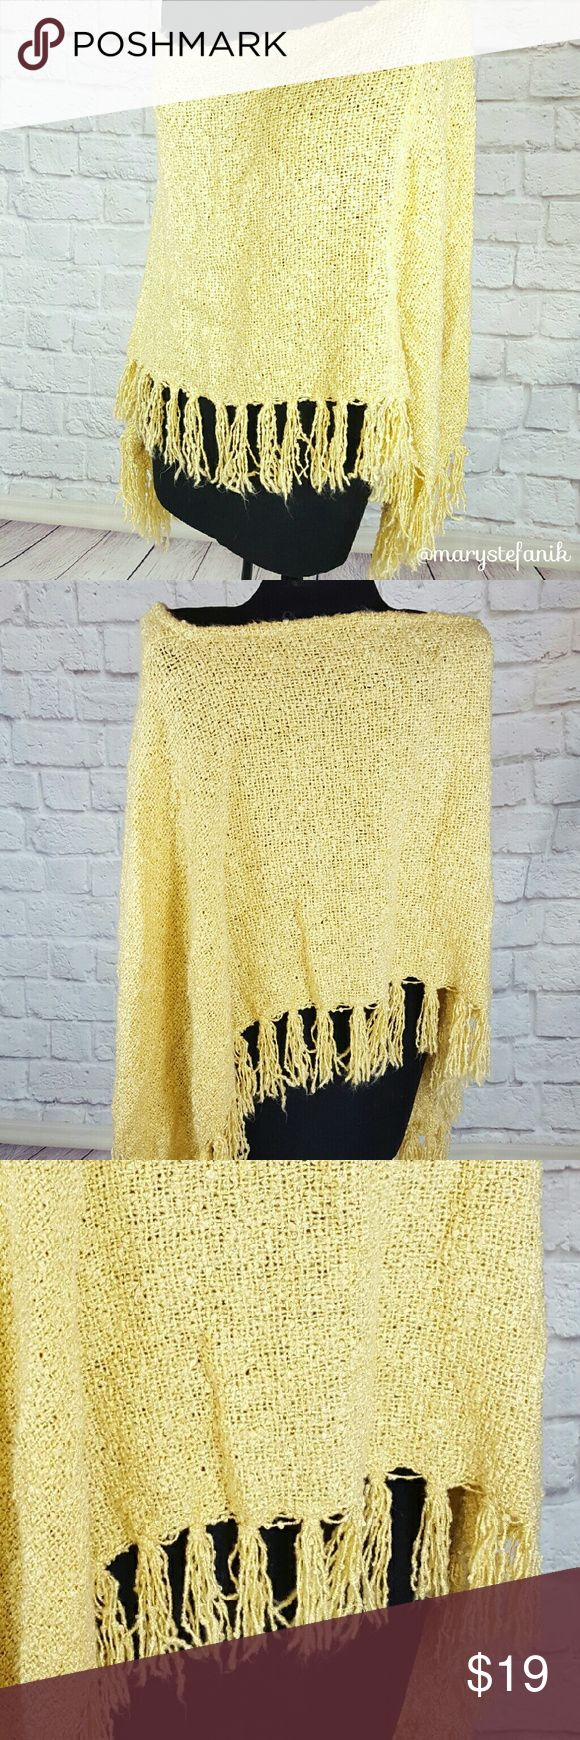 """Mustard Yellow Fringed Sweater Cape Poncho Mustard Yellow Fringed Sweater Cape Poncho in excellent used condition. No tag. Soft and warm. Neck is 18"""" from seam to seam. Length is about 24"""".  Please let me know if you have any questions. Happy Poshing! Mary Stefanik  Sweaters Shrugs & Ponchos"""